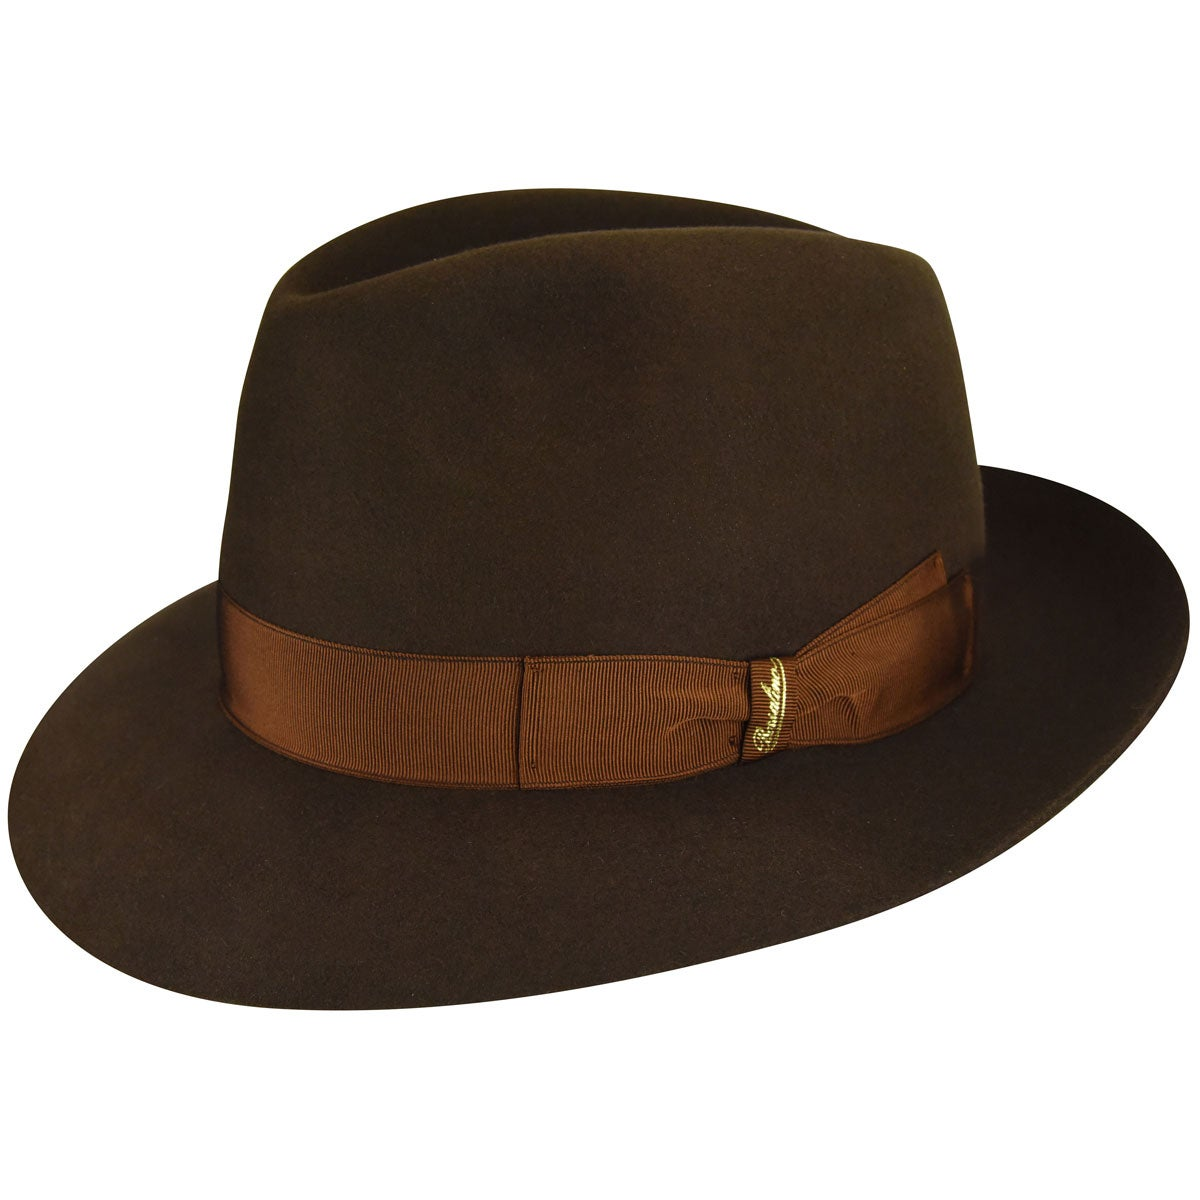 1930s Style Mens Hats Novara Fedora $320.00 AT vintagedancer.com